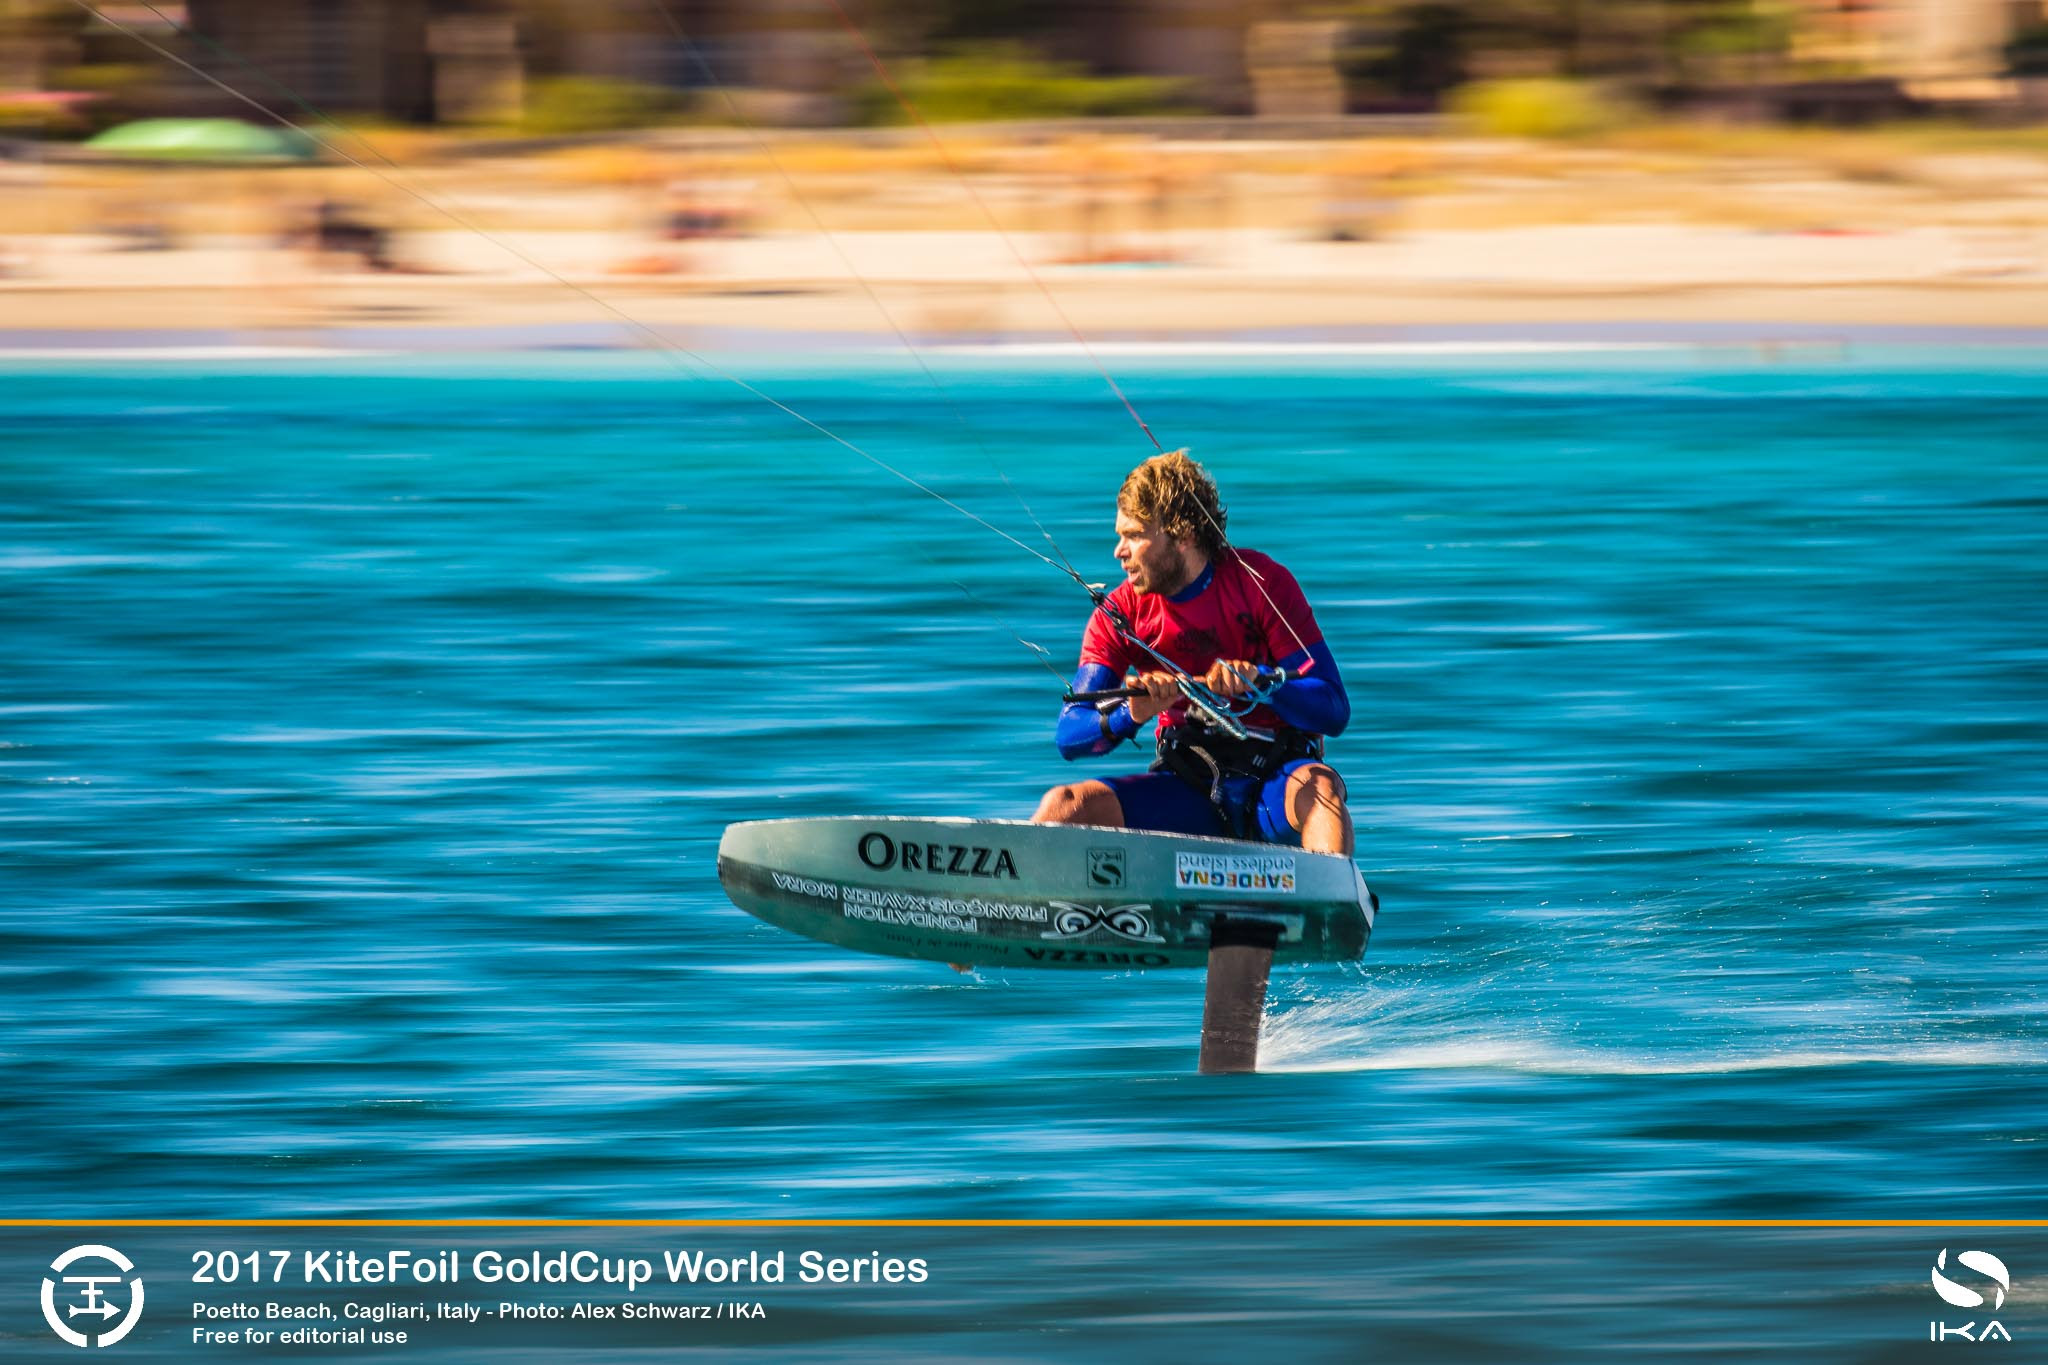 0d28175d dcc5 4bae bb23 707b0fd5f63d - Final day of racing at KiteFoil World Championships